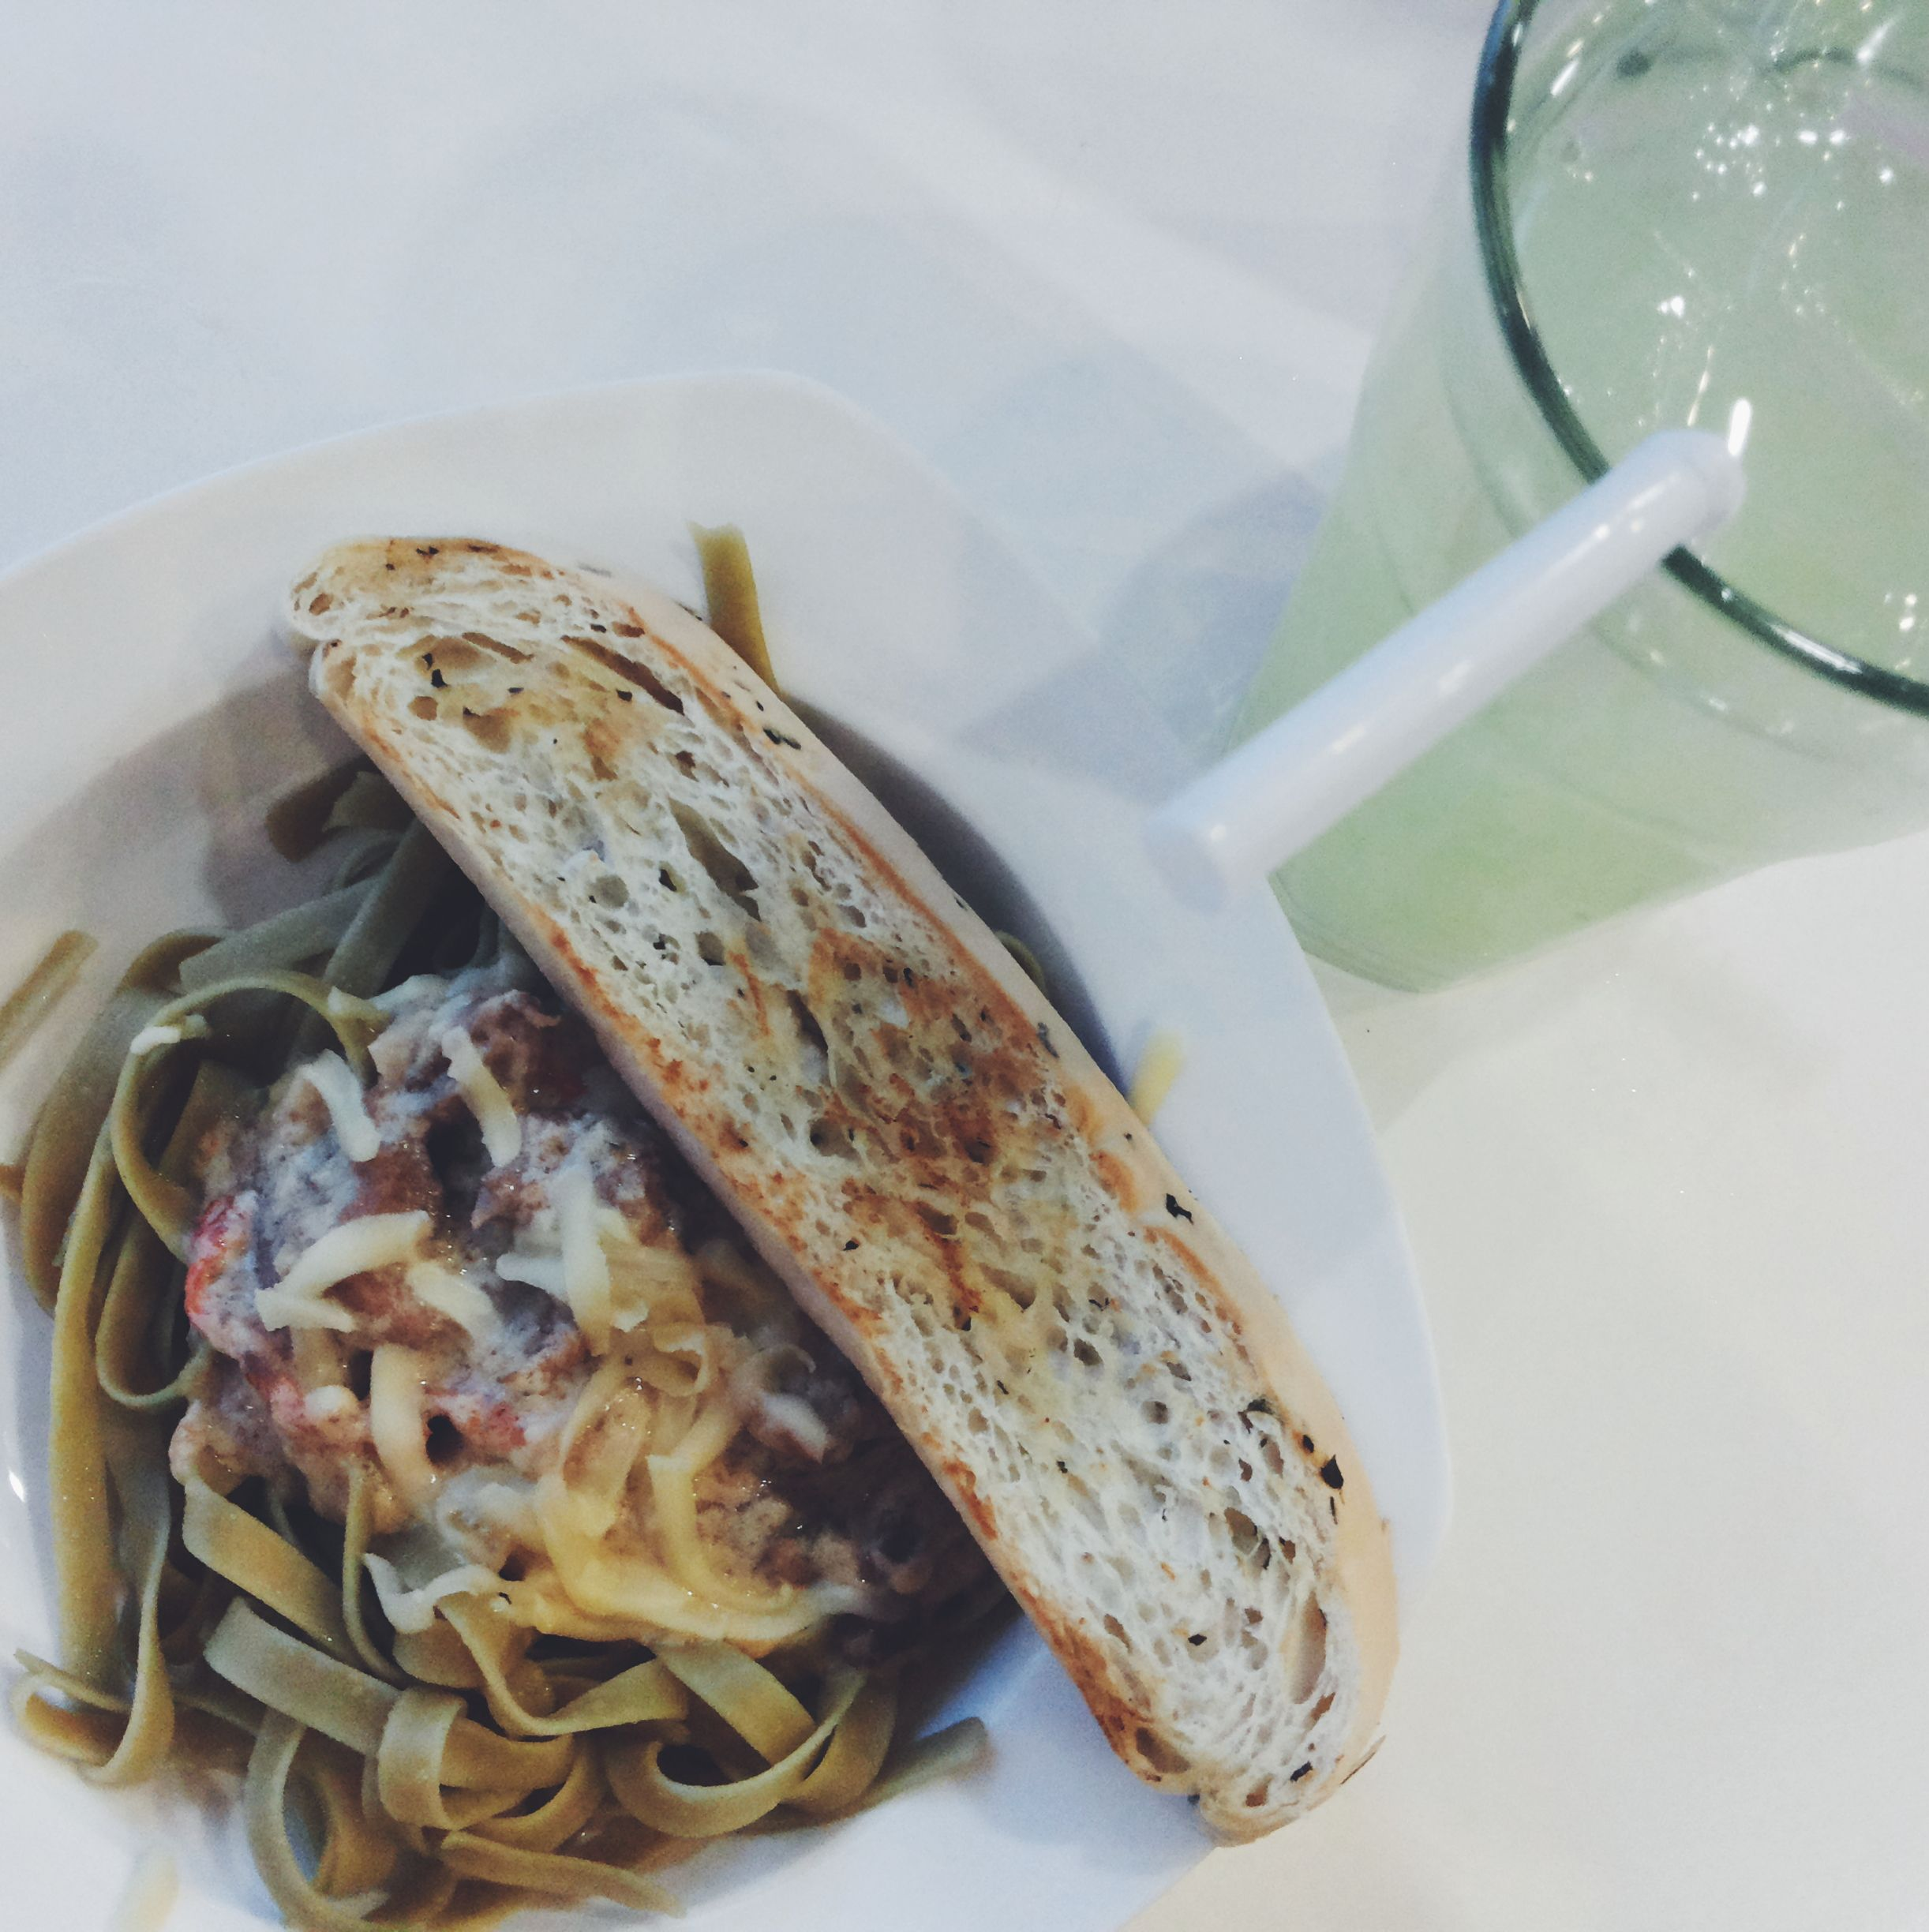 Fettuccine with sliced toasted bread and green lemonade. Eat out with Ate Mic before 2015's Valentines.